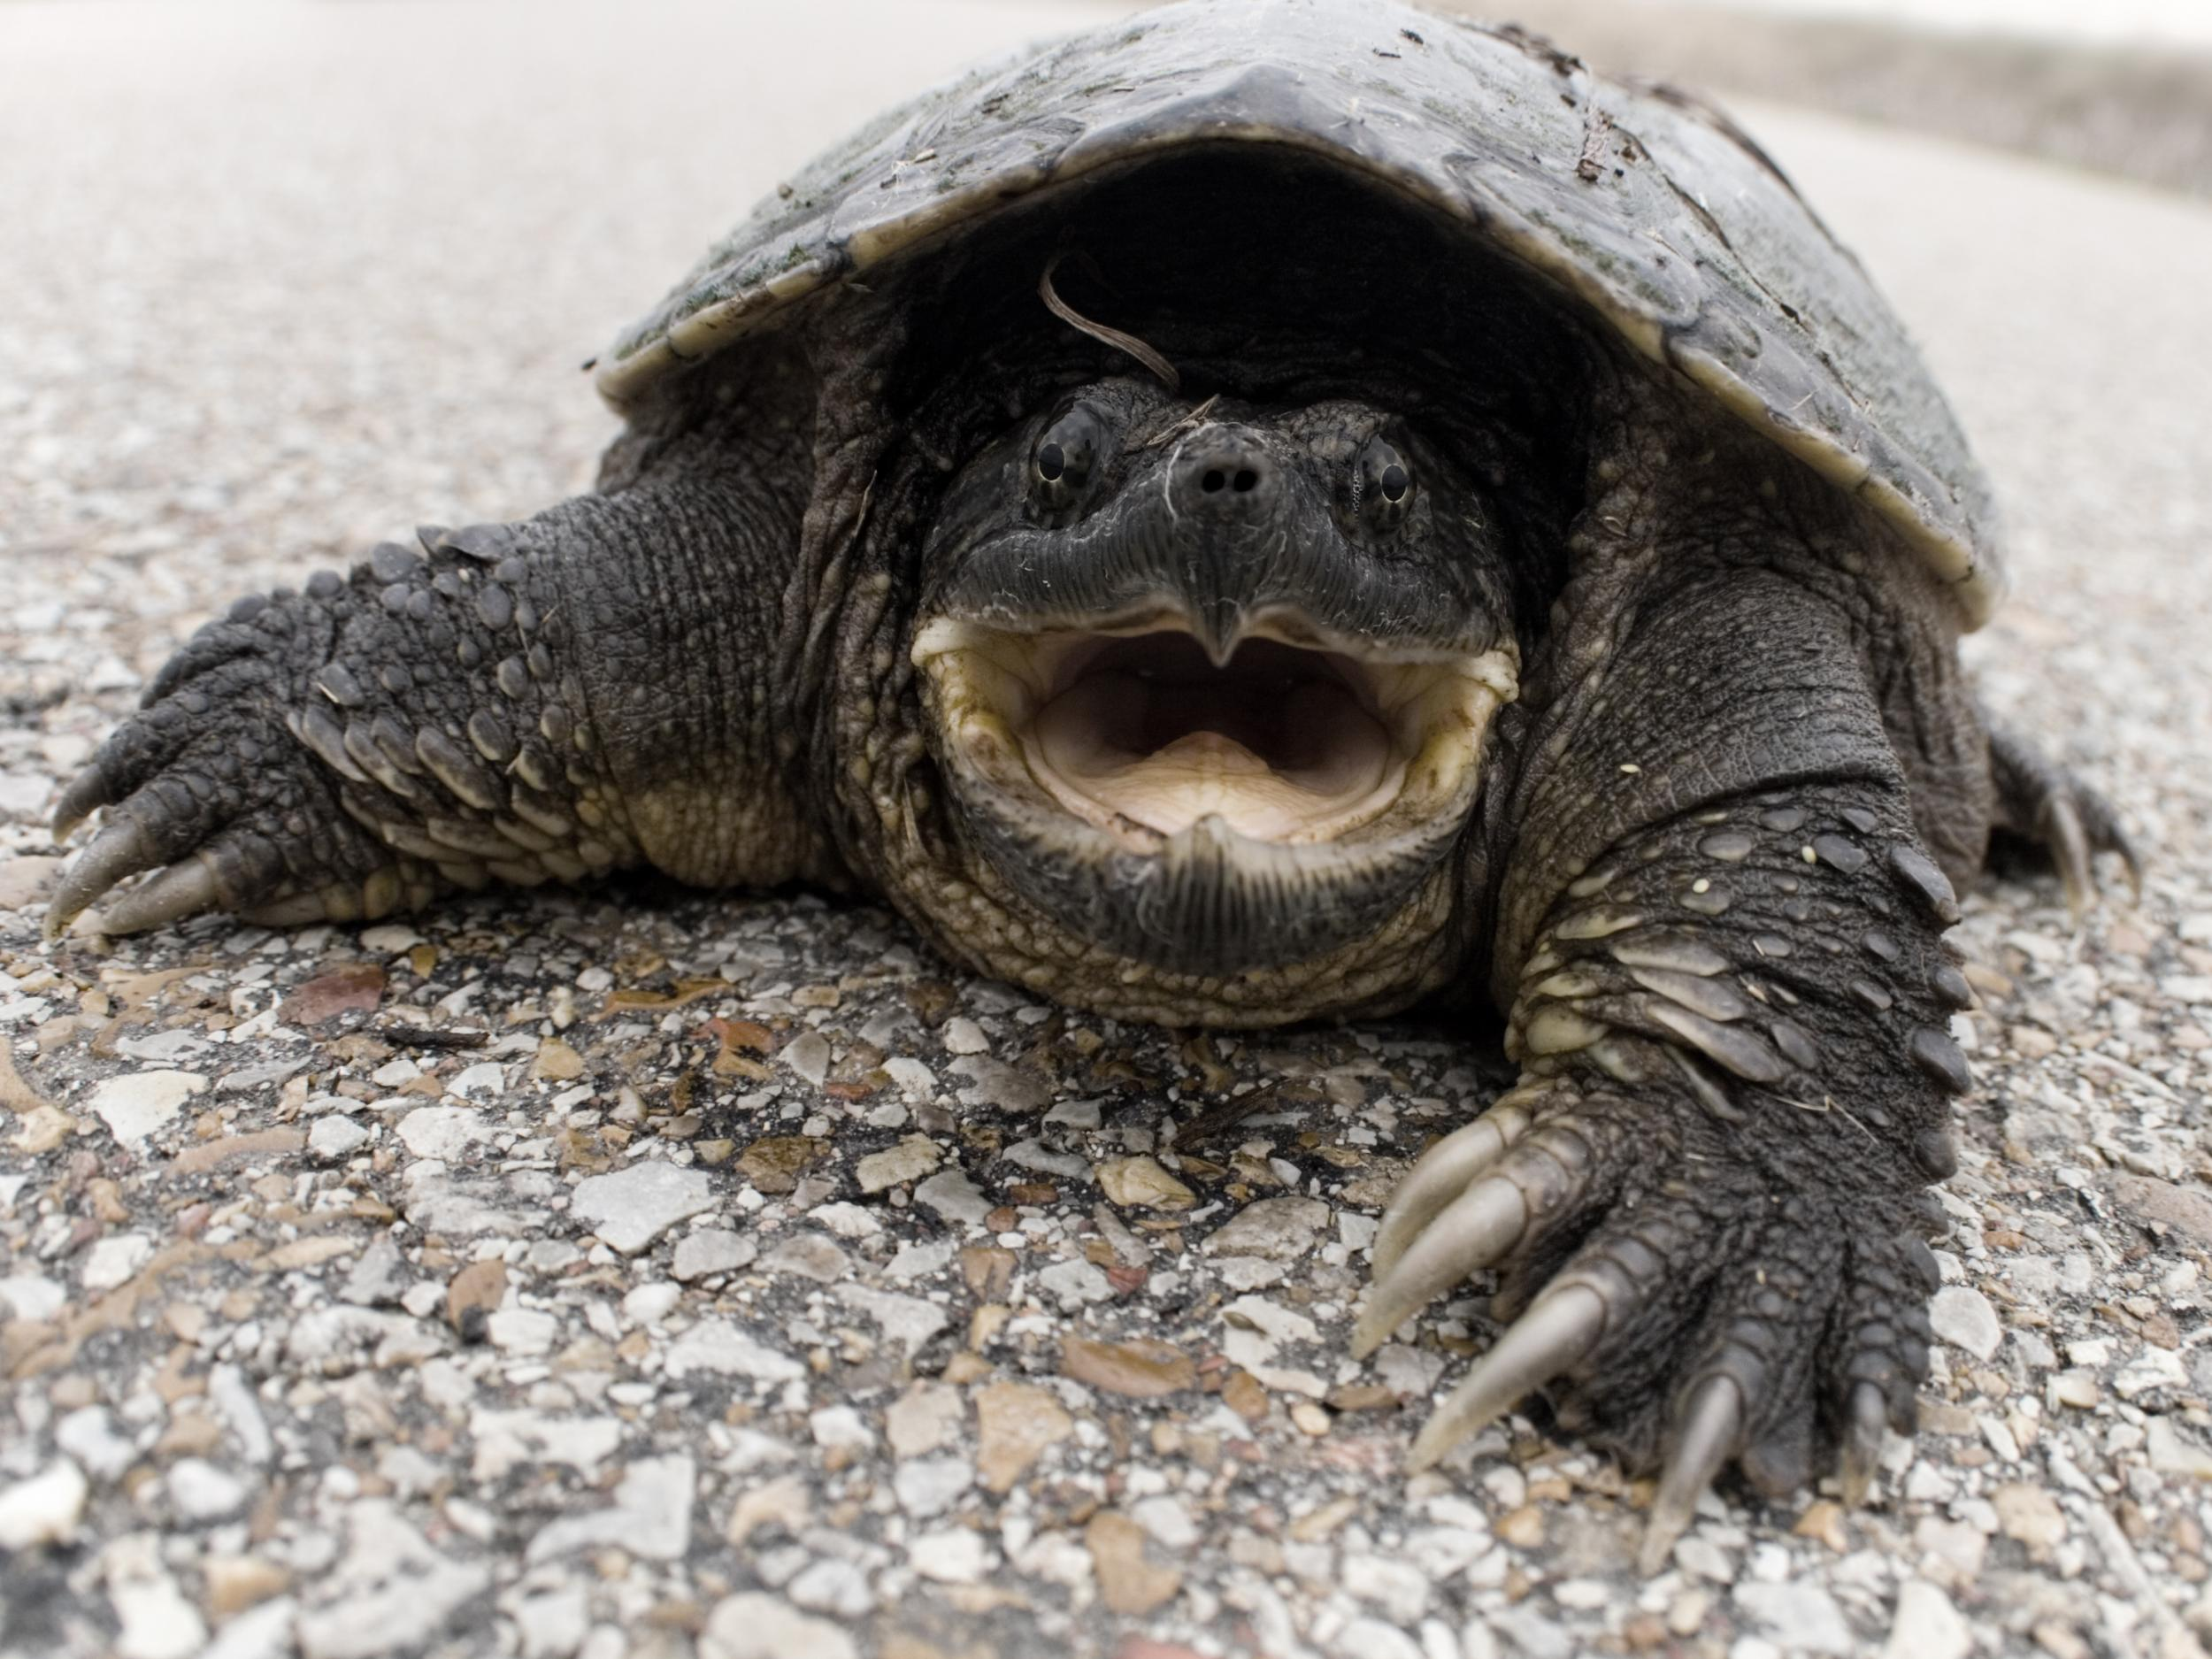 Mercury pollution causing more snapping turtles to be born male than…